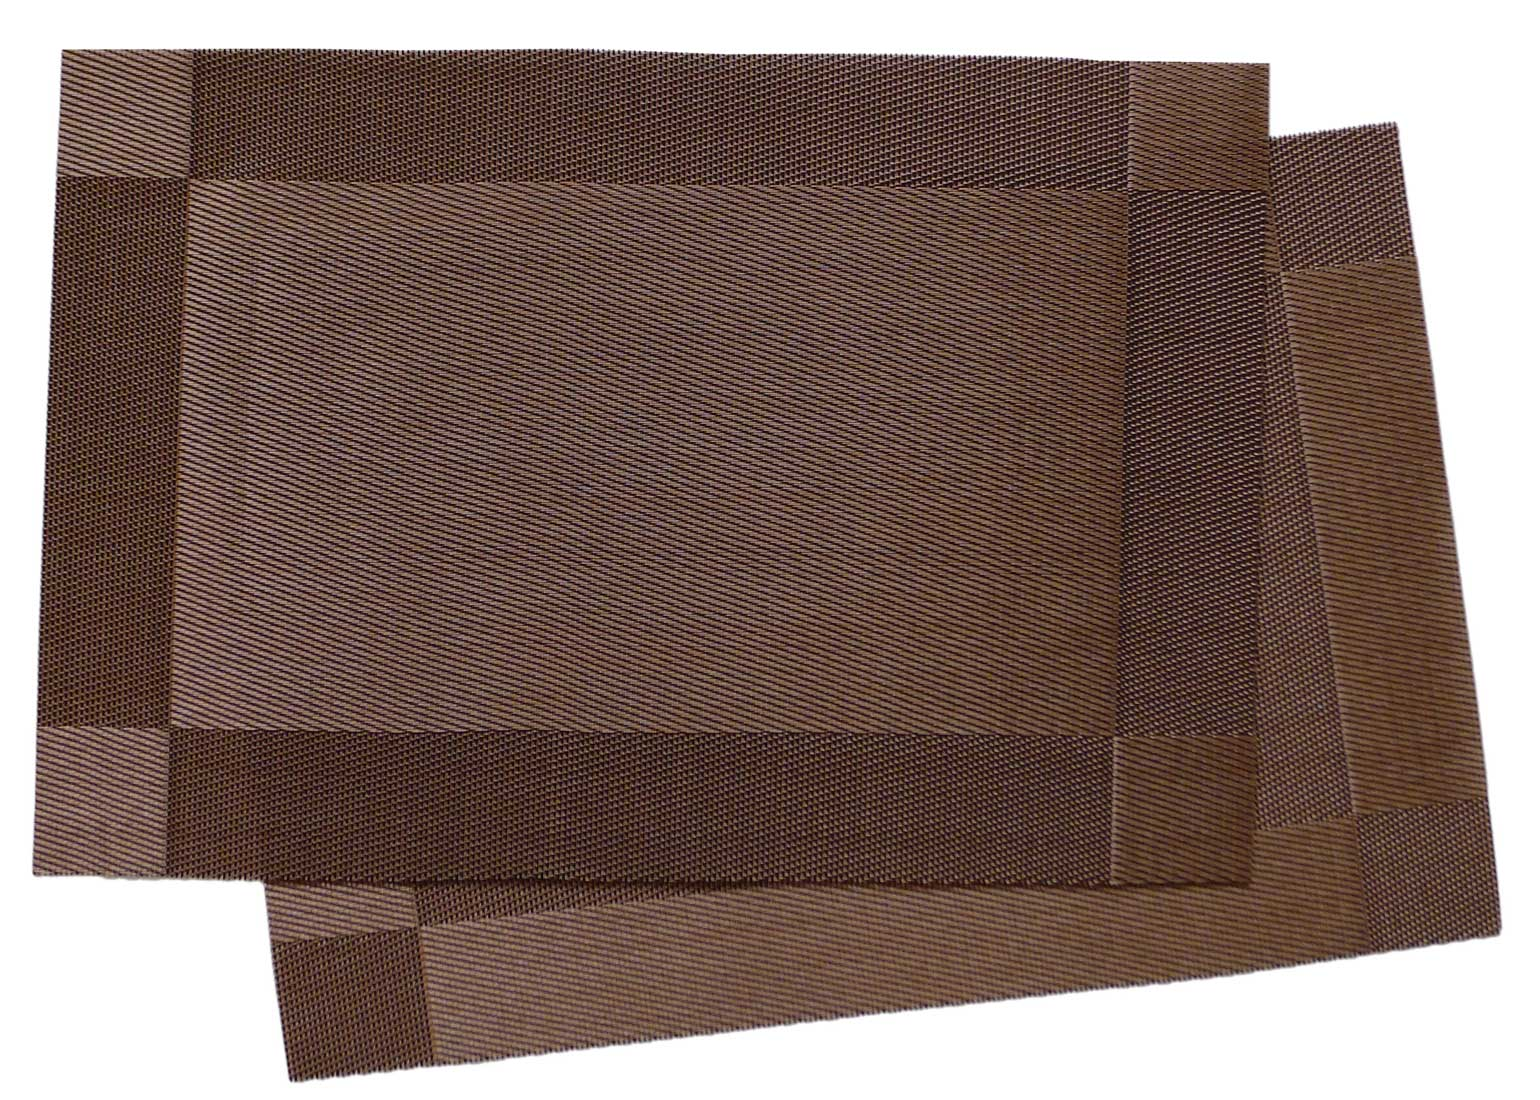 Image of Woven Vinyl Brown Classic MAT22